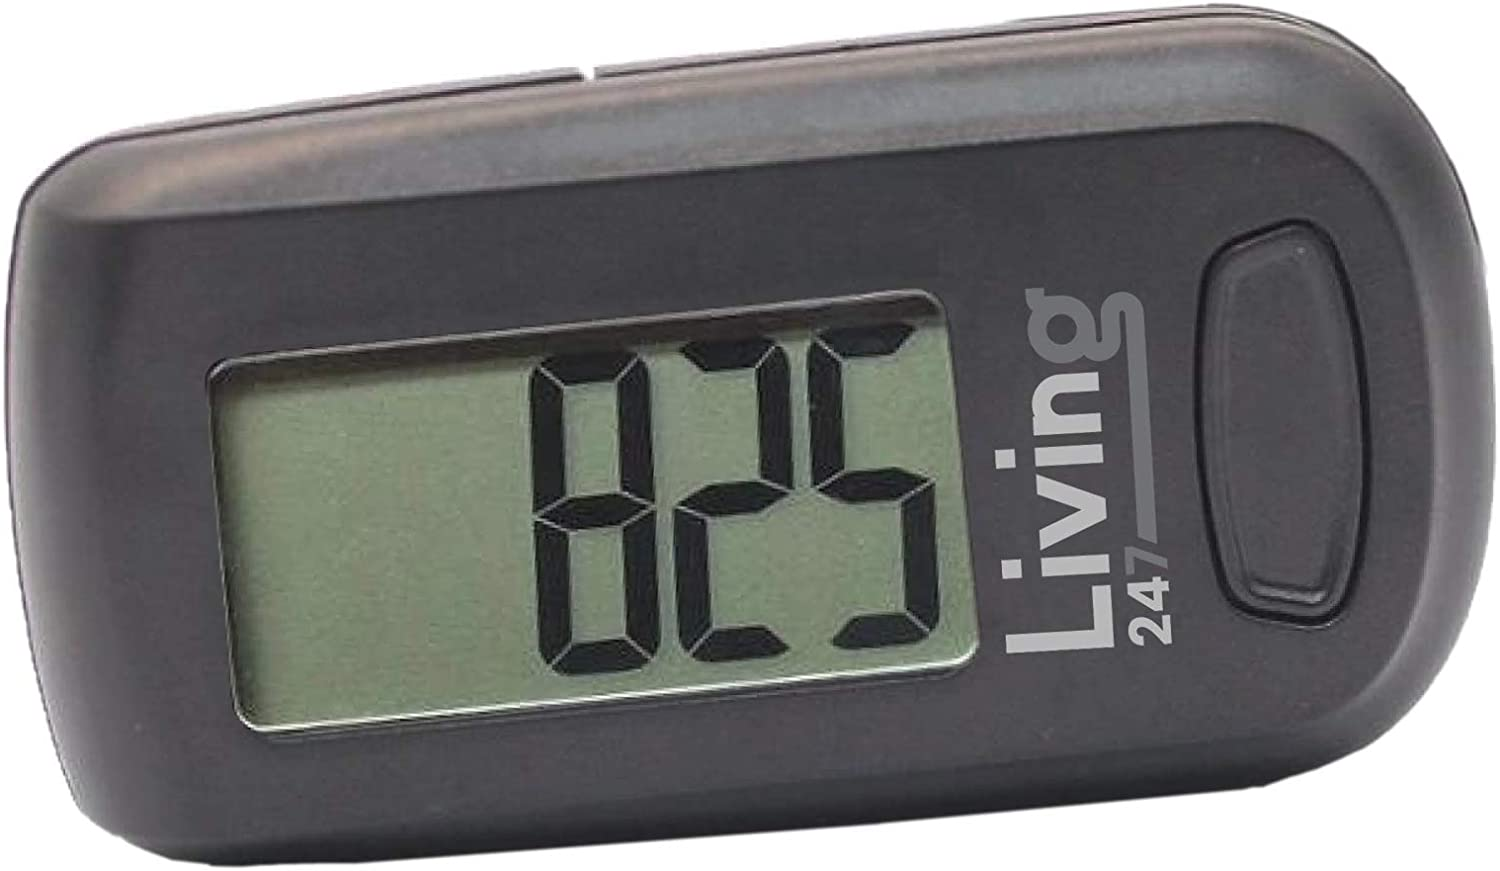 Living247 FitStep 3D Pedometer for Seniors, Easy to Use One Button Step Counter Step Tracker : Sports & Outdoors